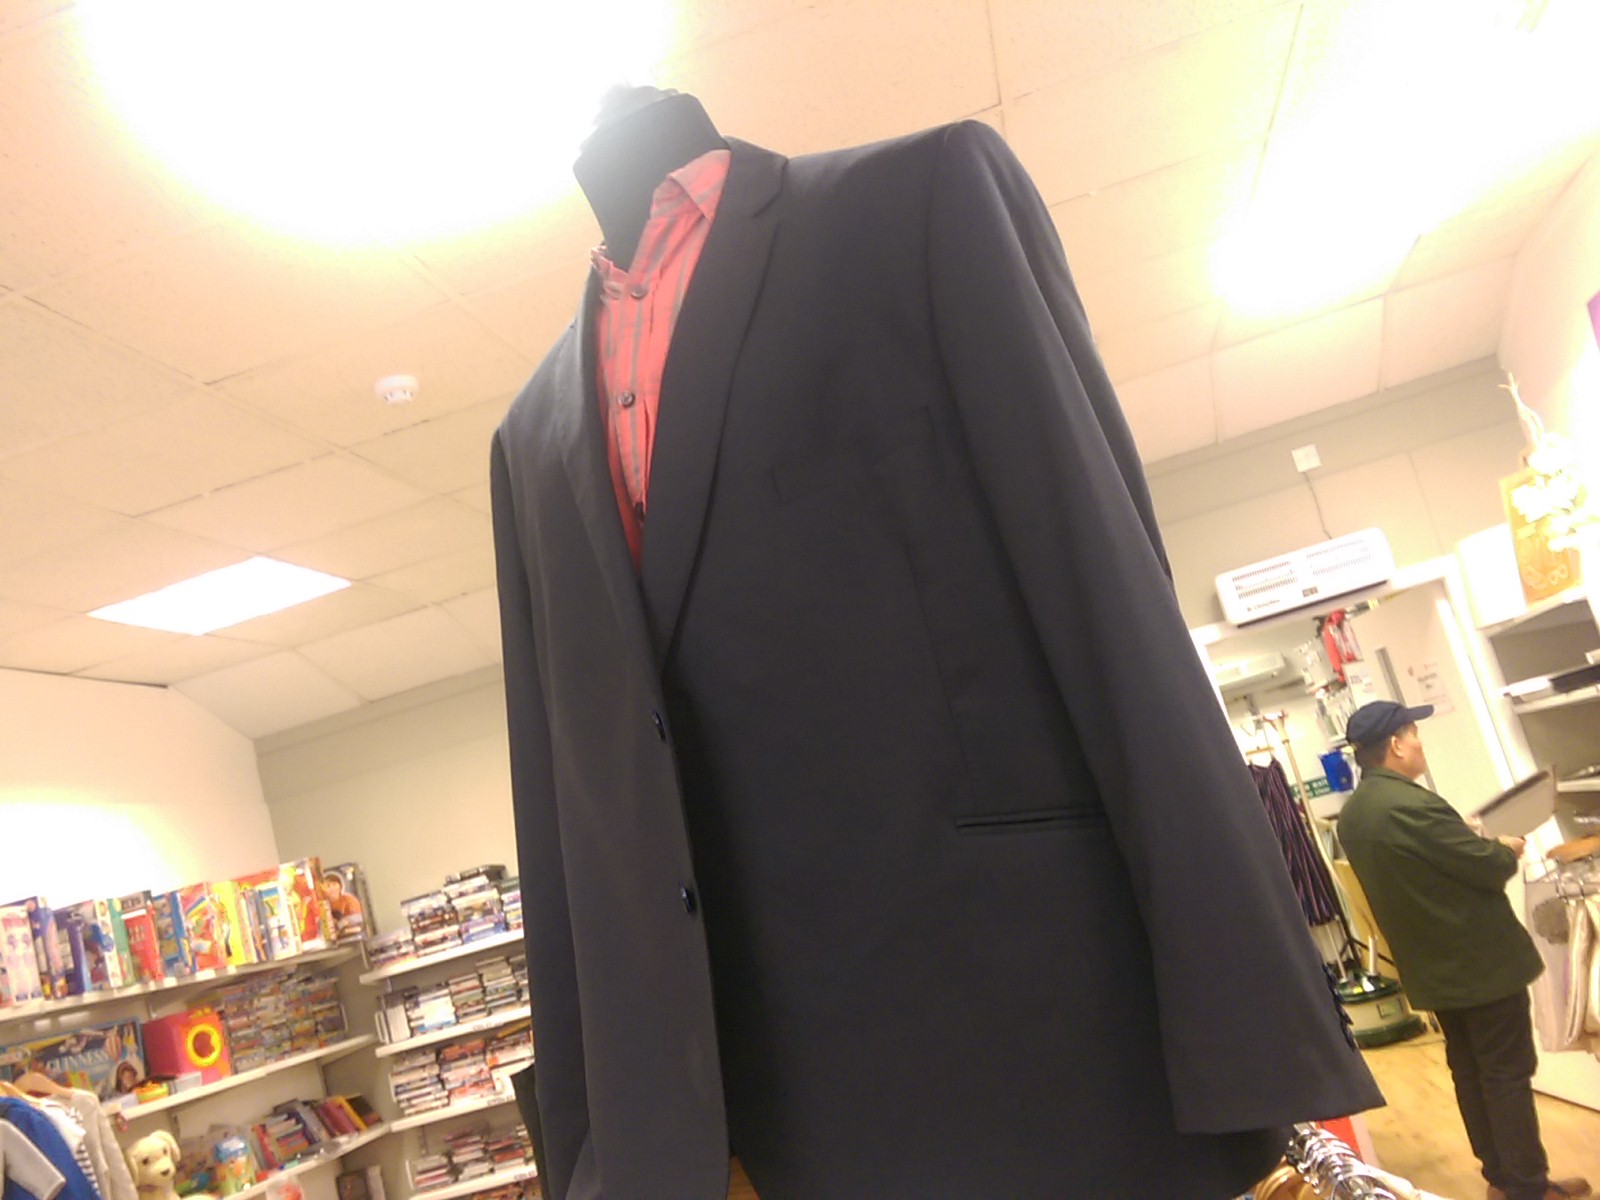 A navy suit jacket on a tailor's dummy with a pink shirt